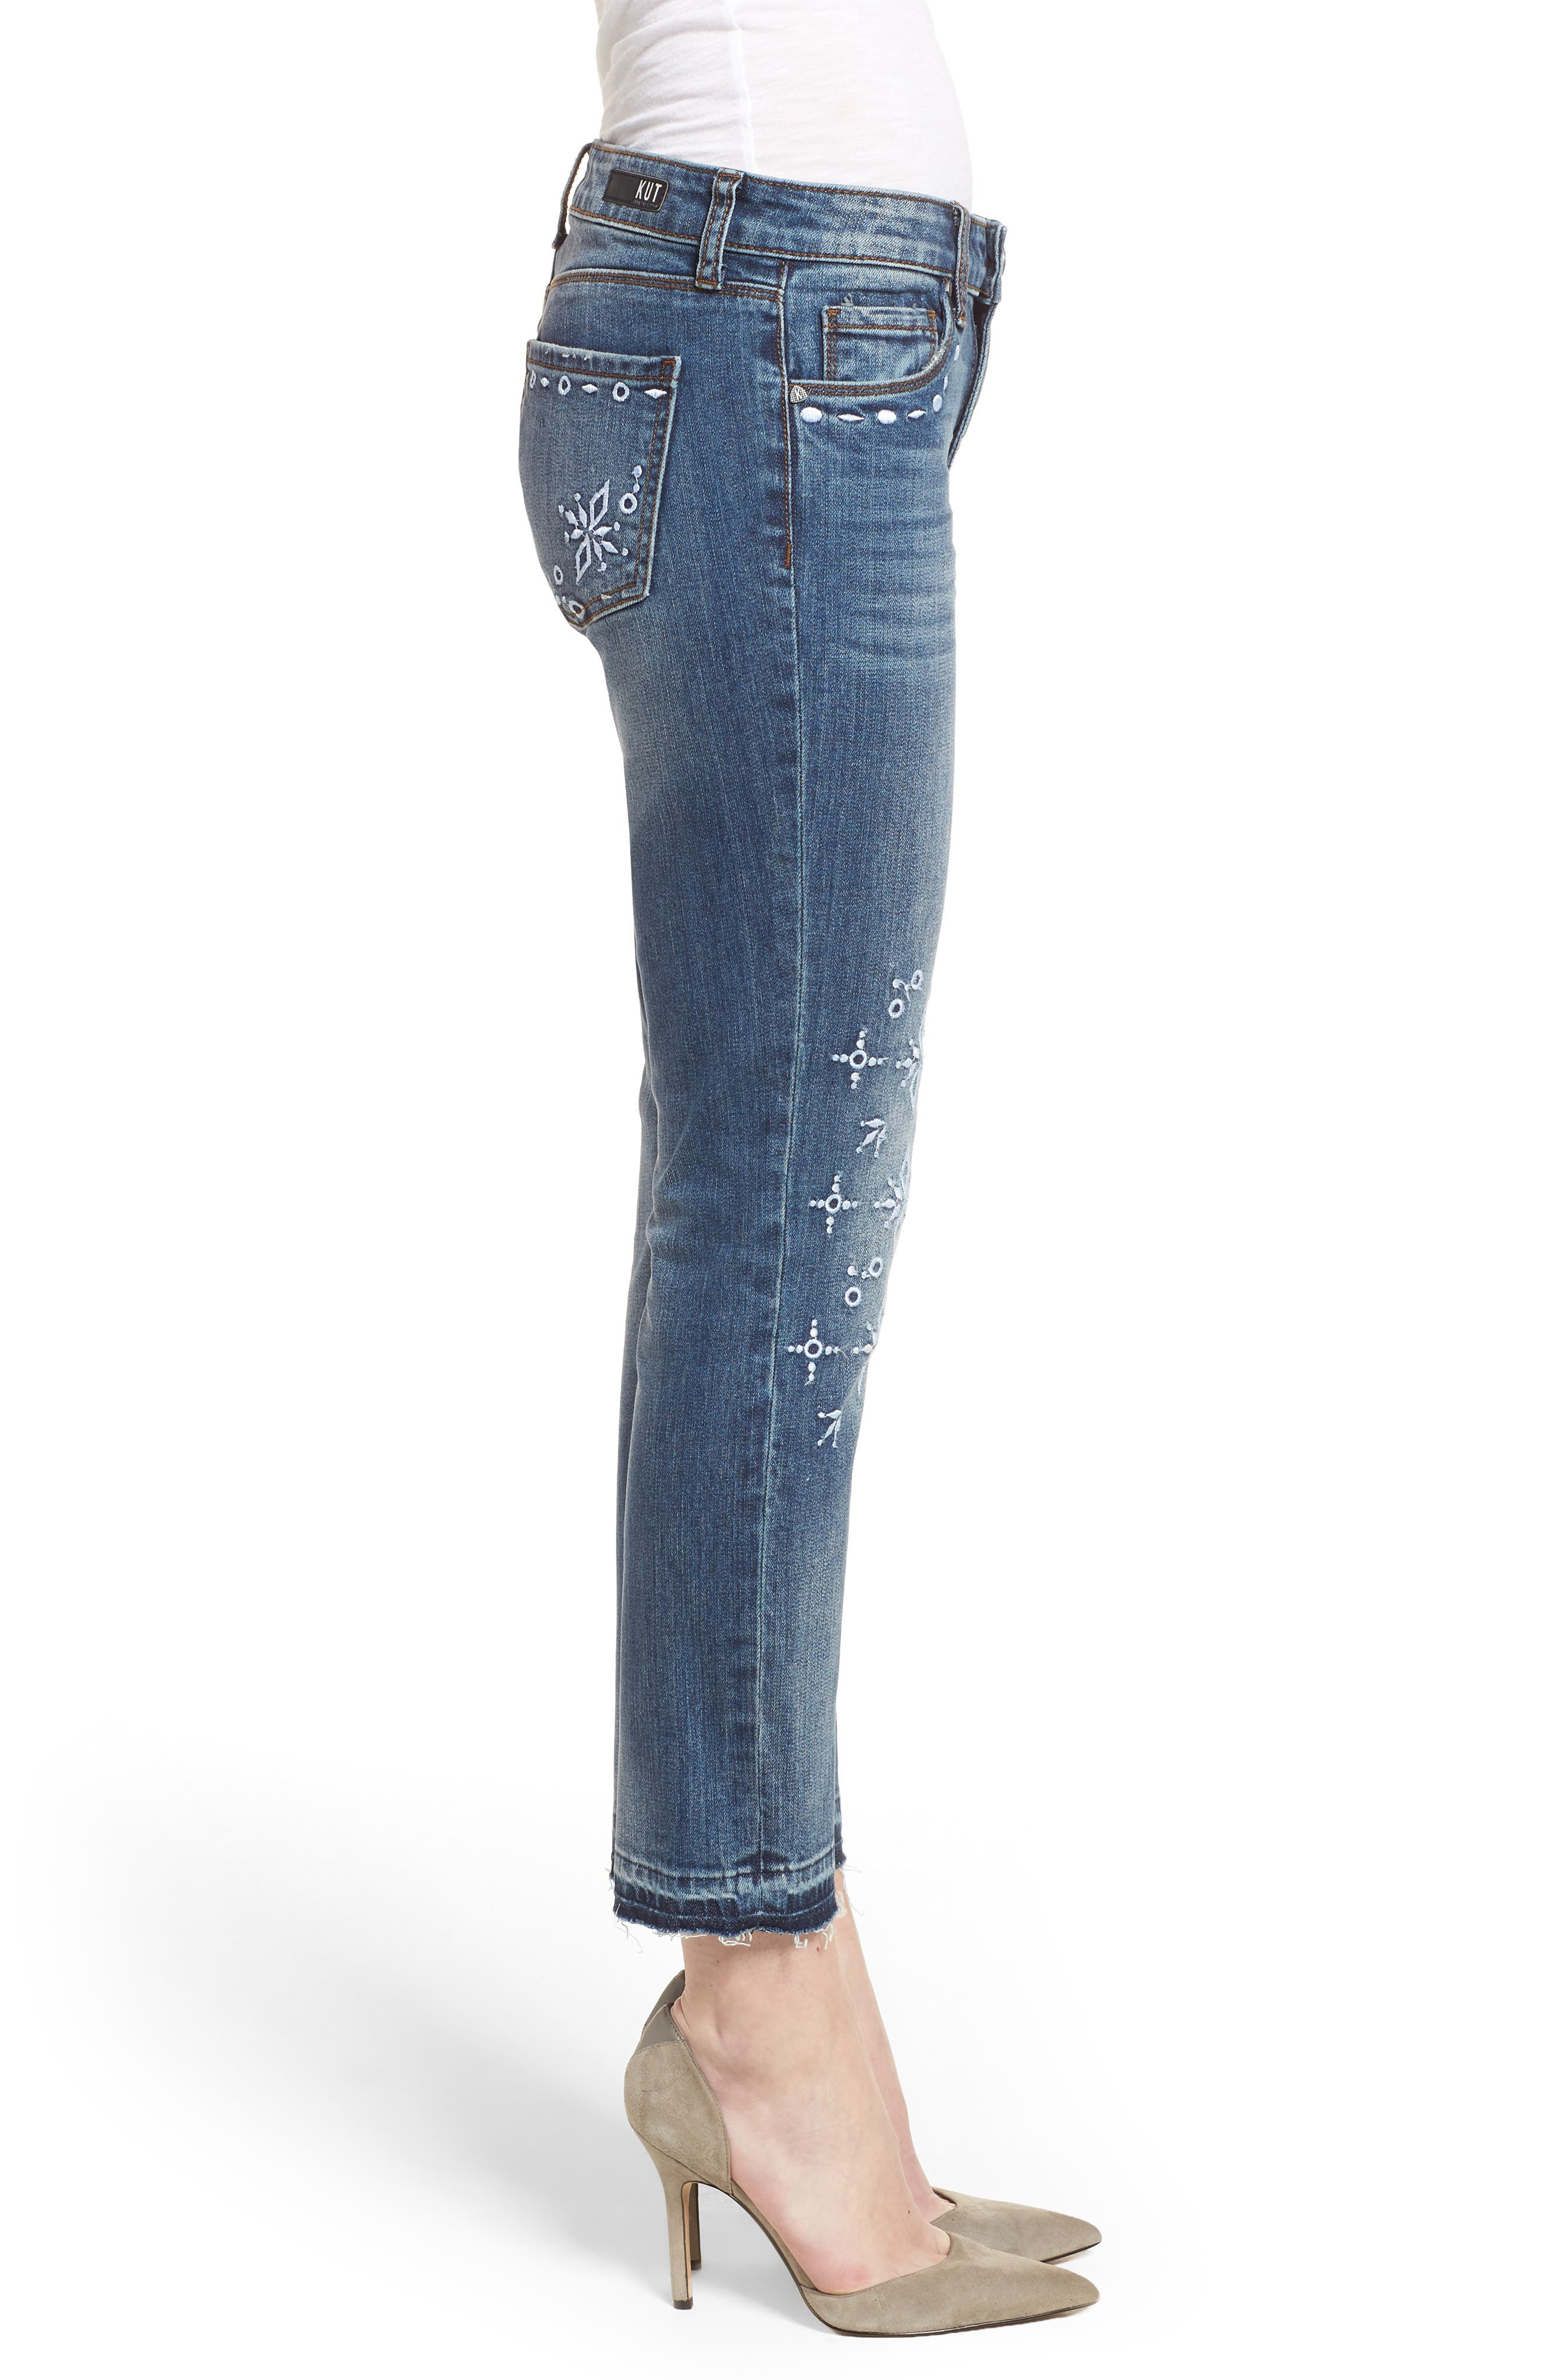 Reese Release Hem Embroidered Jeans,                             Alternate thumbnail 3, color,                             400